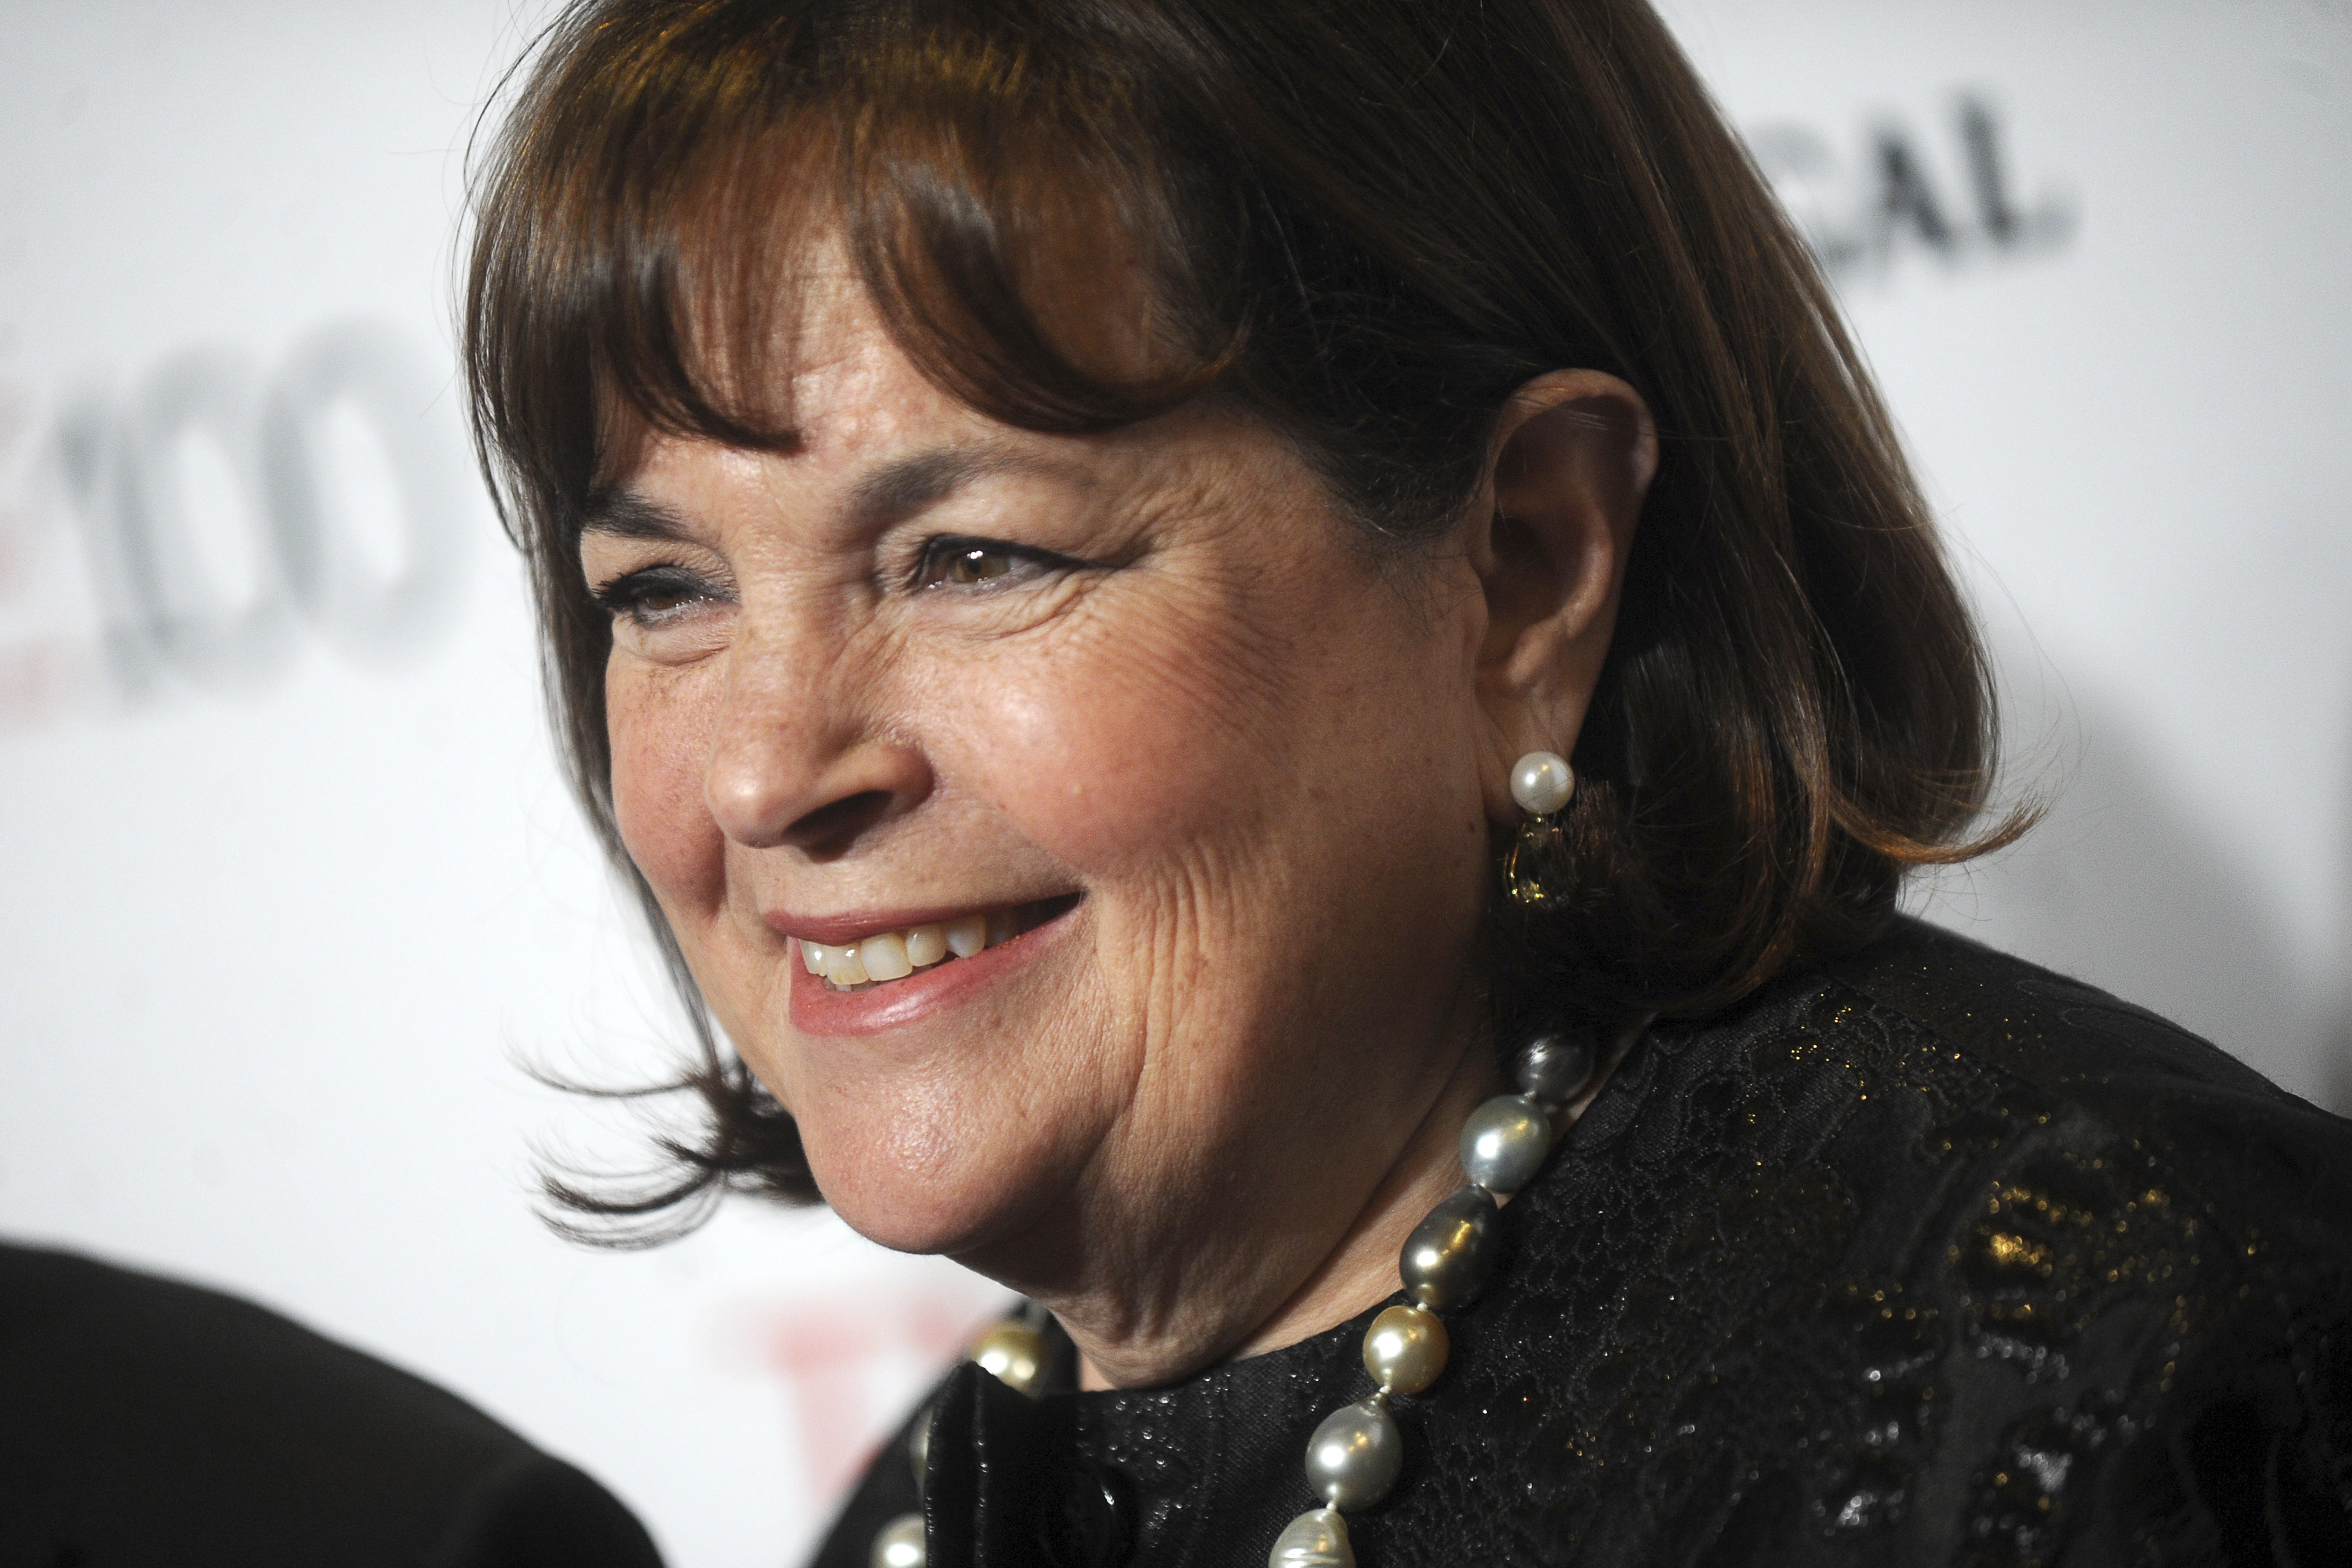 Ina Garten attending the TIME 100 Gala, TIME's 100 Most Influential People In The World at Jazz at Lincoln Center on April 21, 2015 in New York City/picture alliance Photo by: Dennis Van Tine/Geisler-Fotopres/picture-alliance/dpa/AP Images